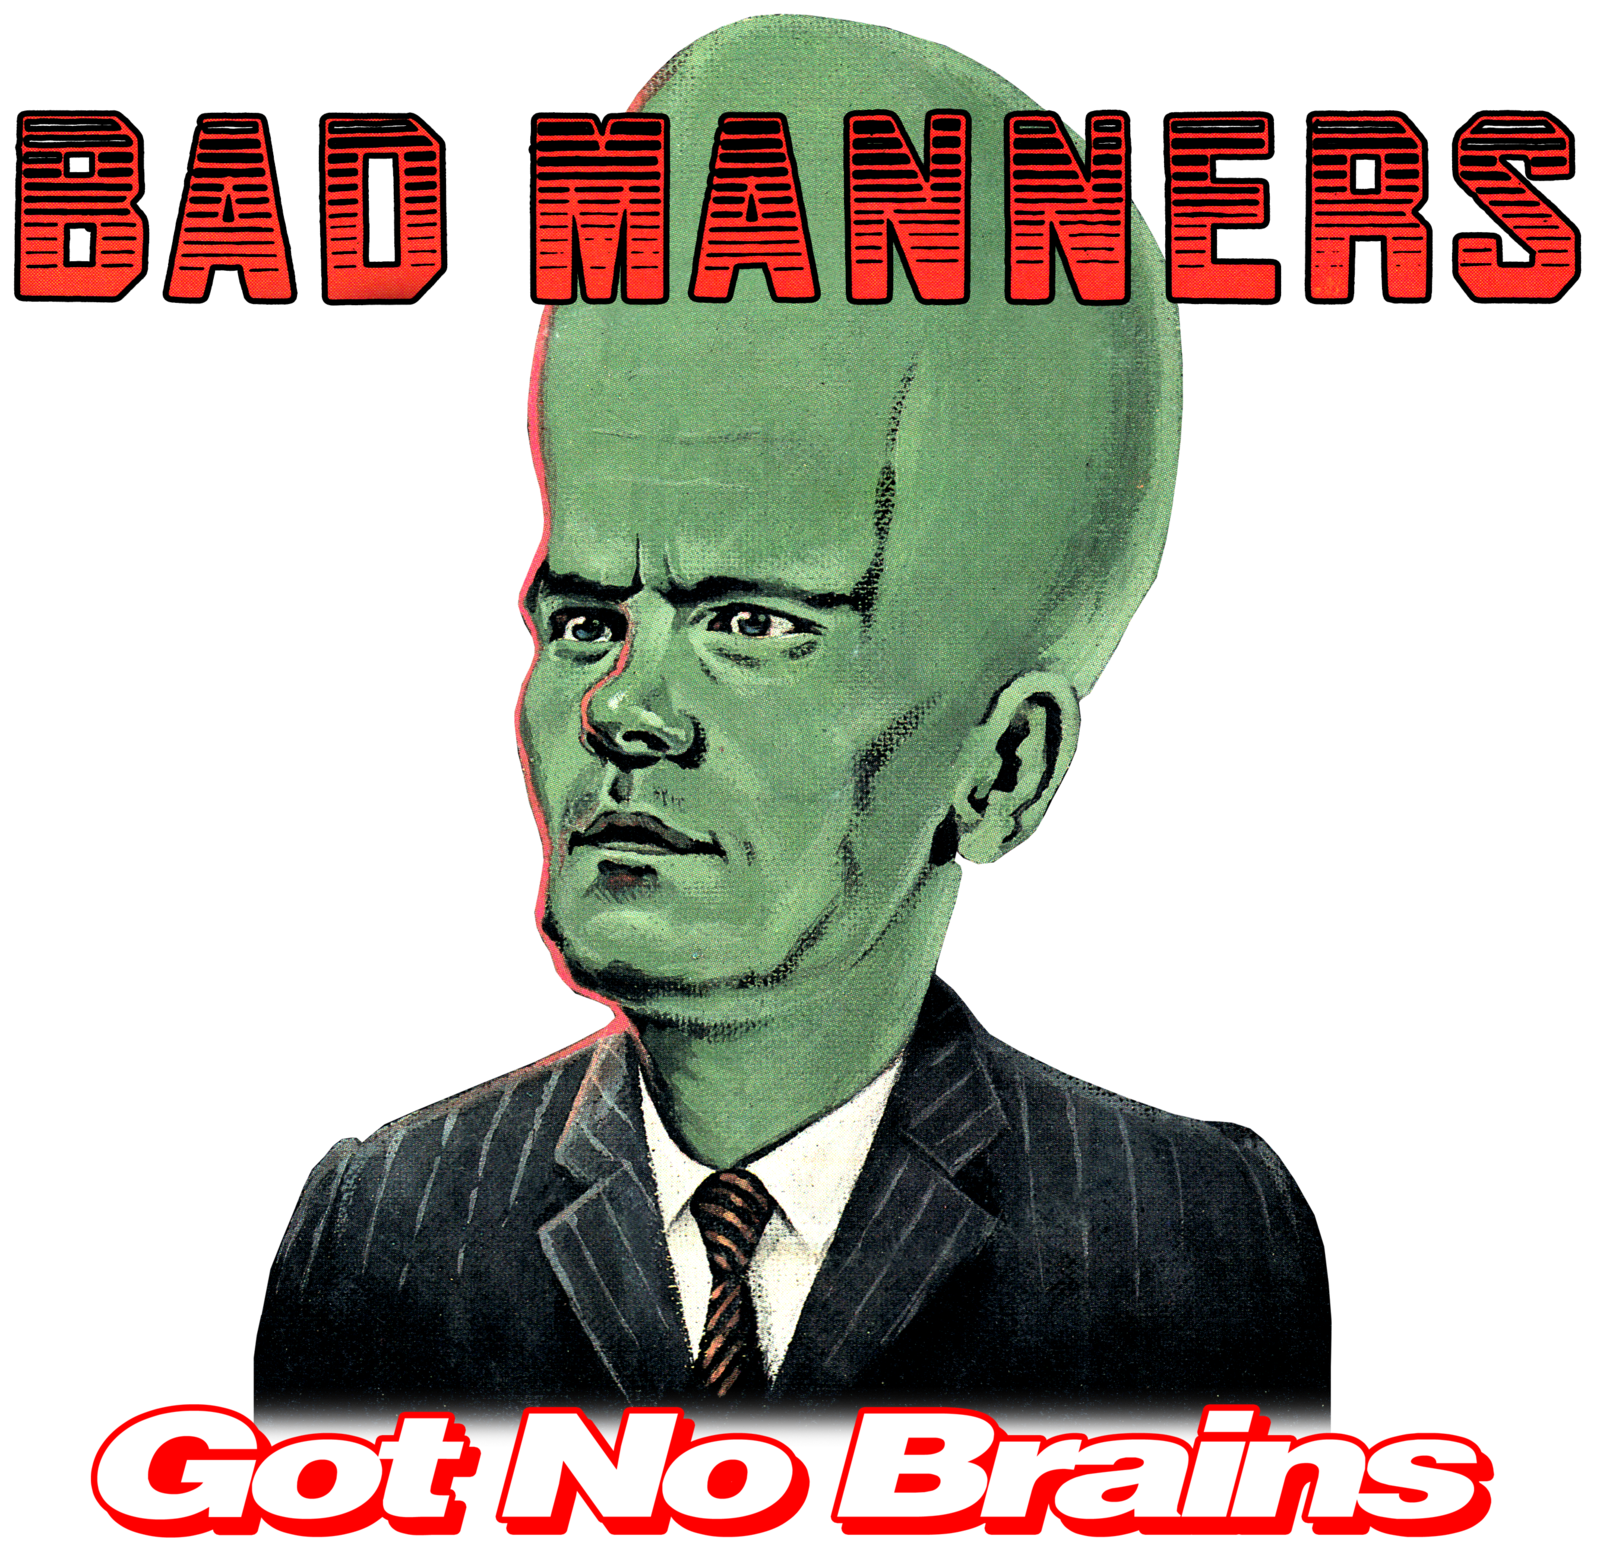 Got No Brains t shirt cotton ska 2Tone bad manners madness specials skinhead mod